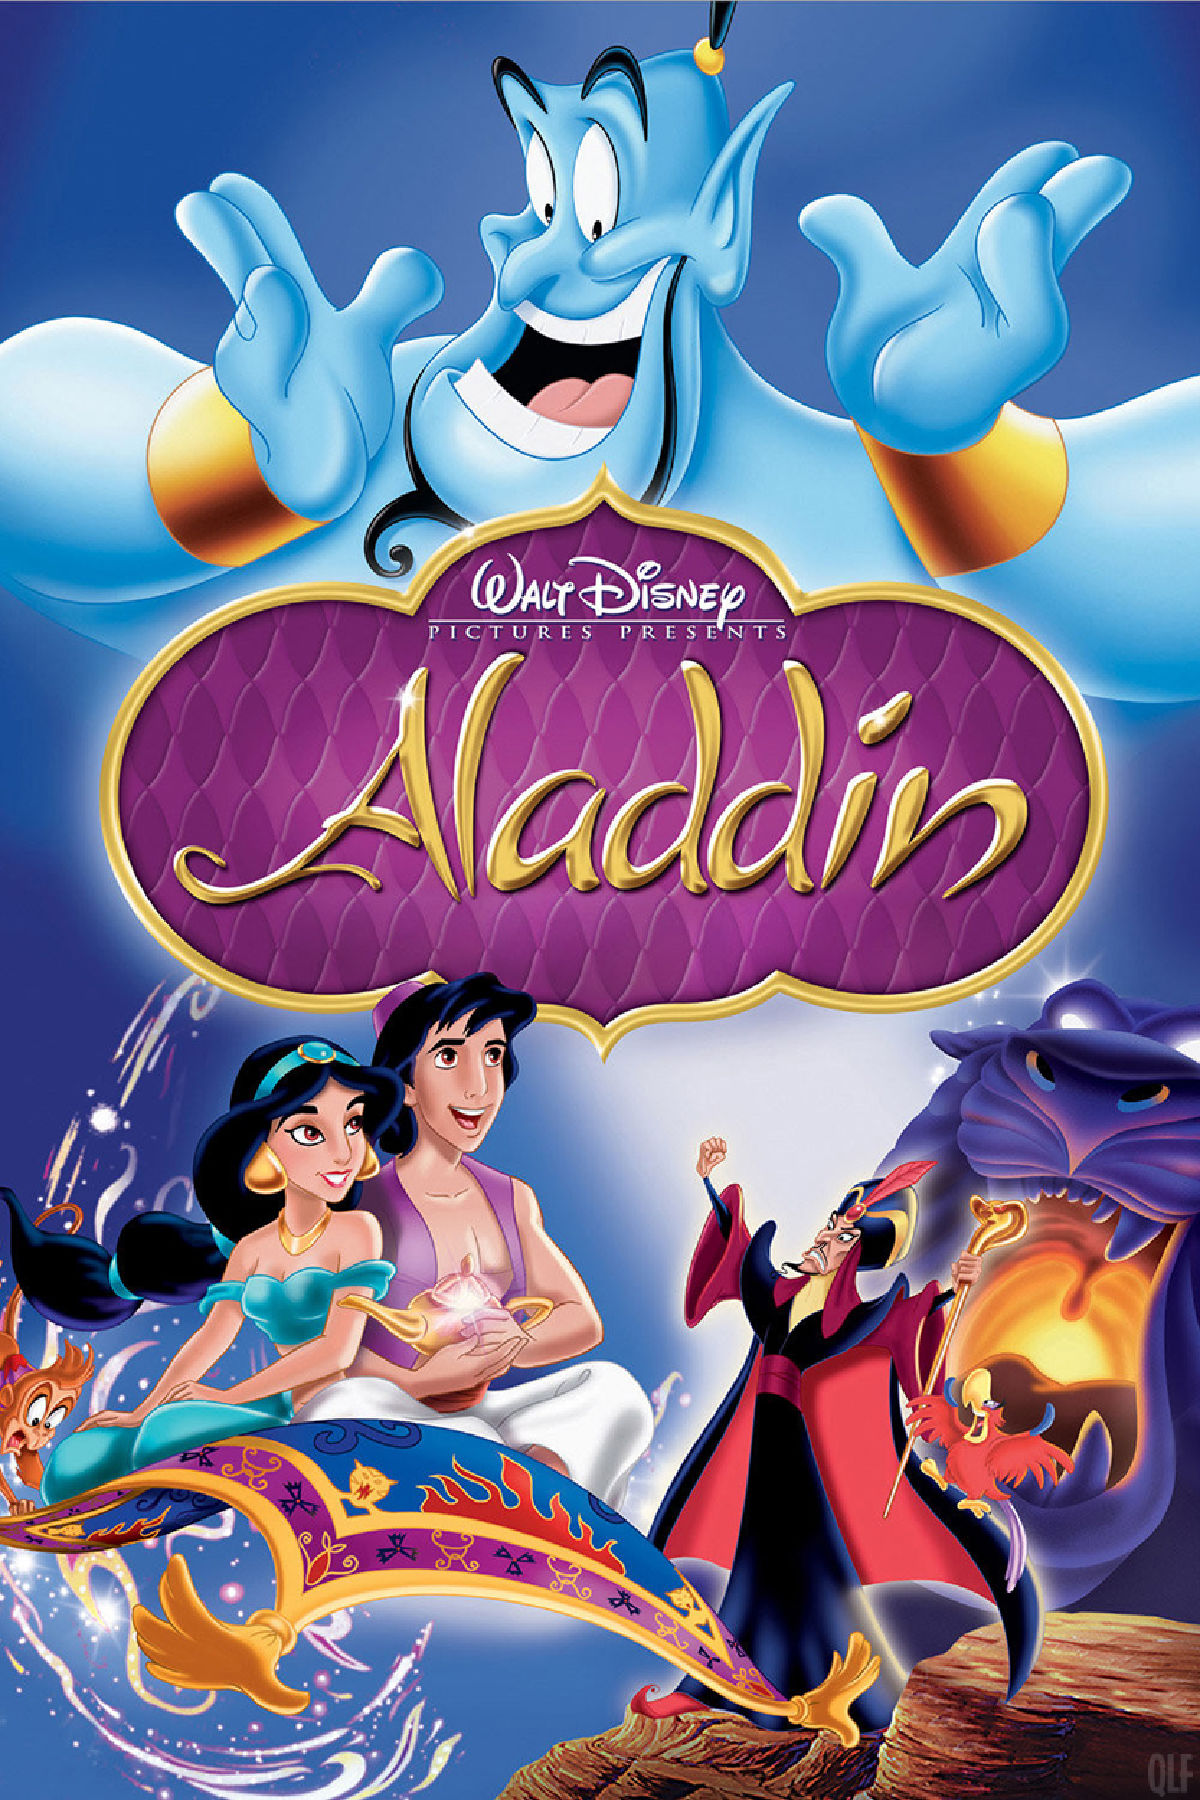 'Aladdin' movie poster